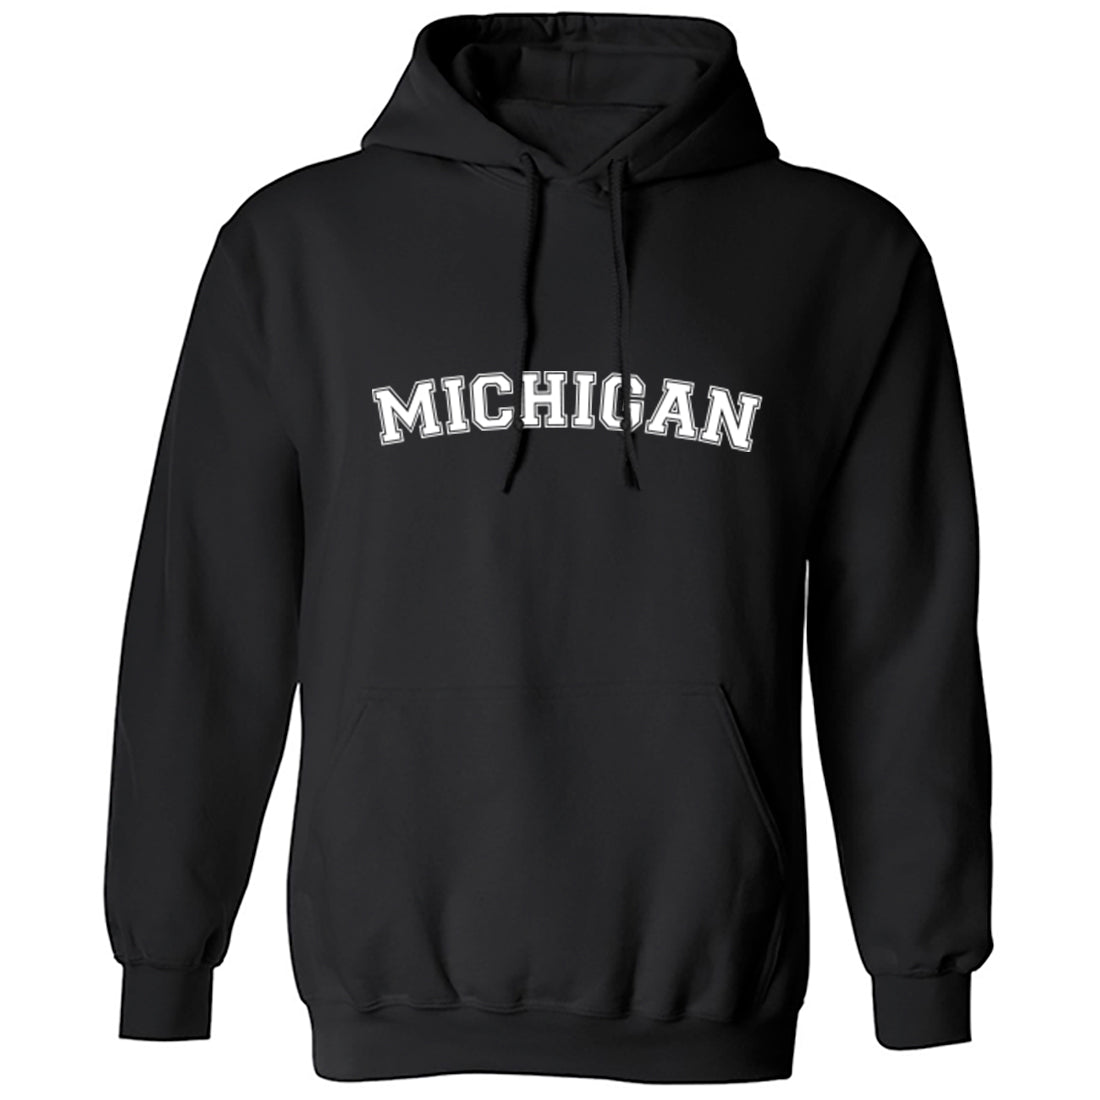 Michigan American Type Unisex Hoodie K1092 - Illustrated Identity Ltd.